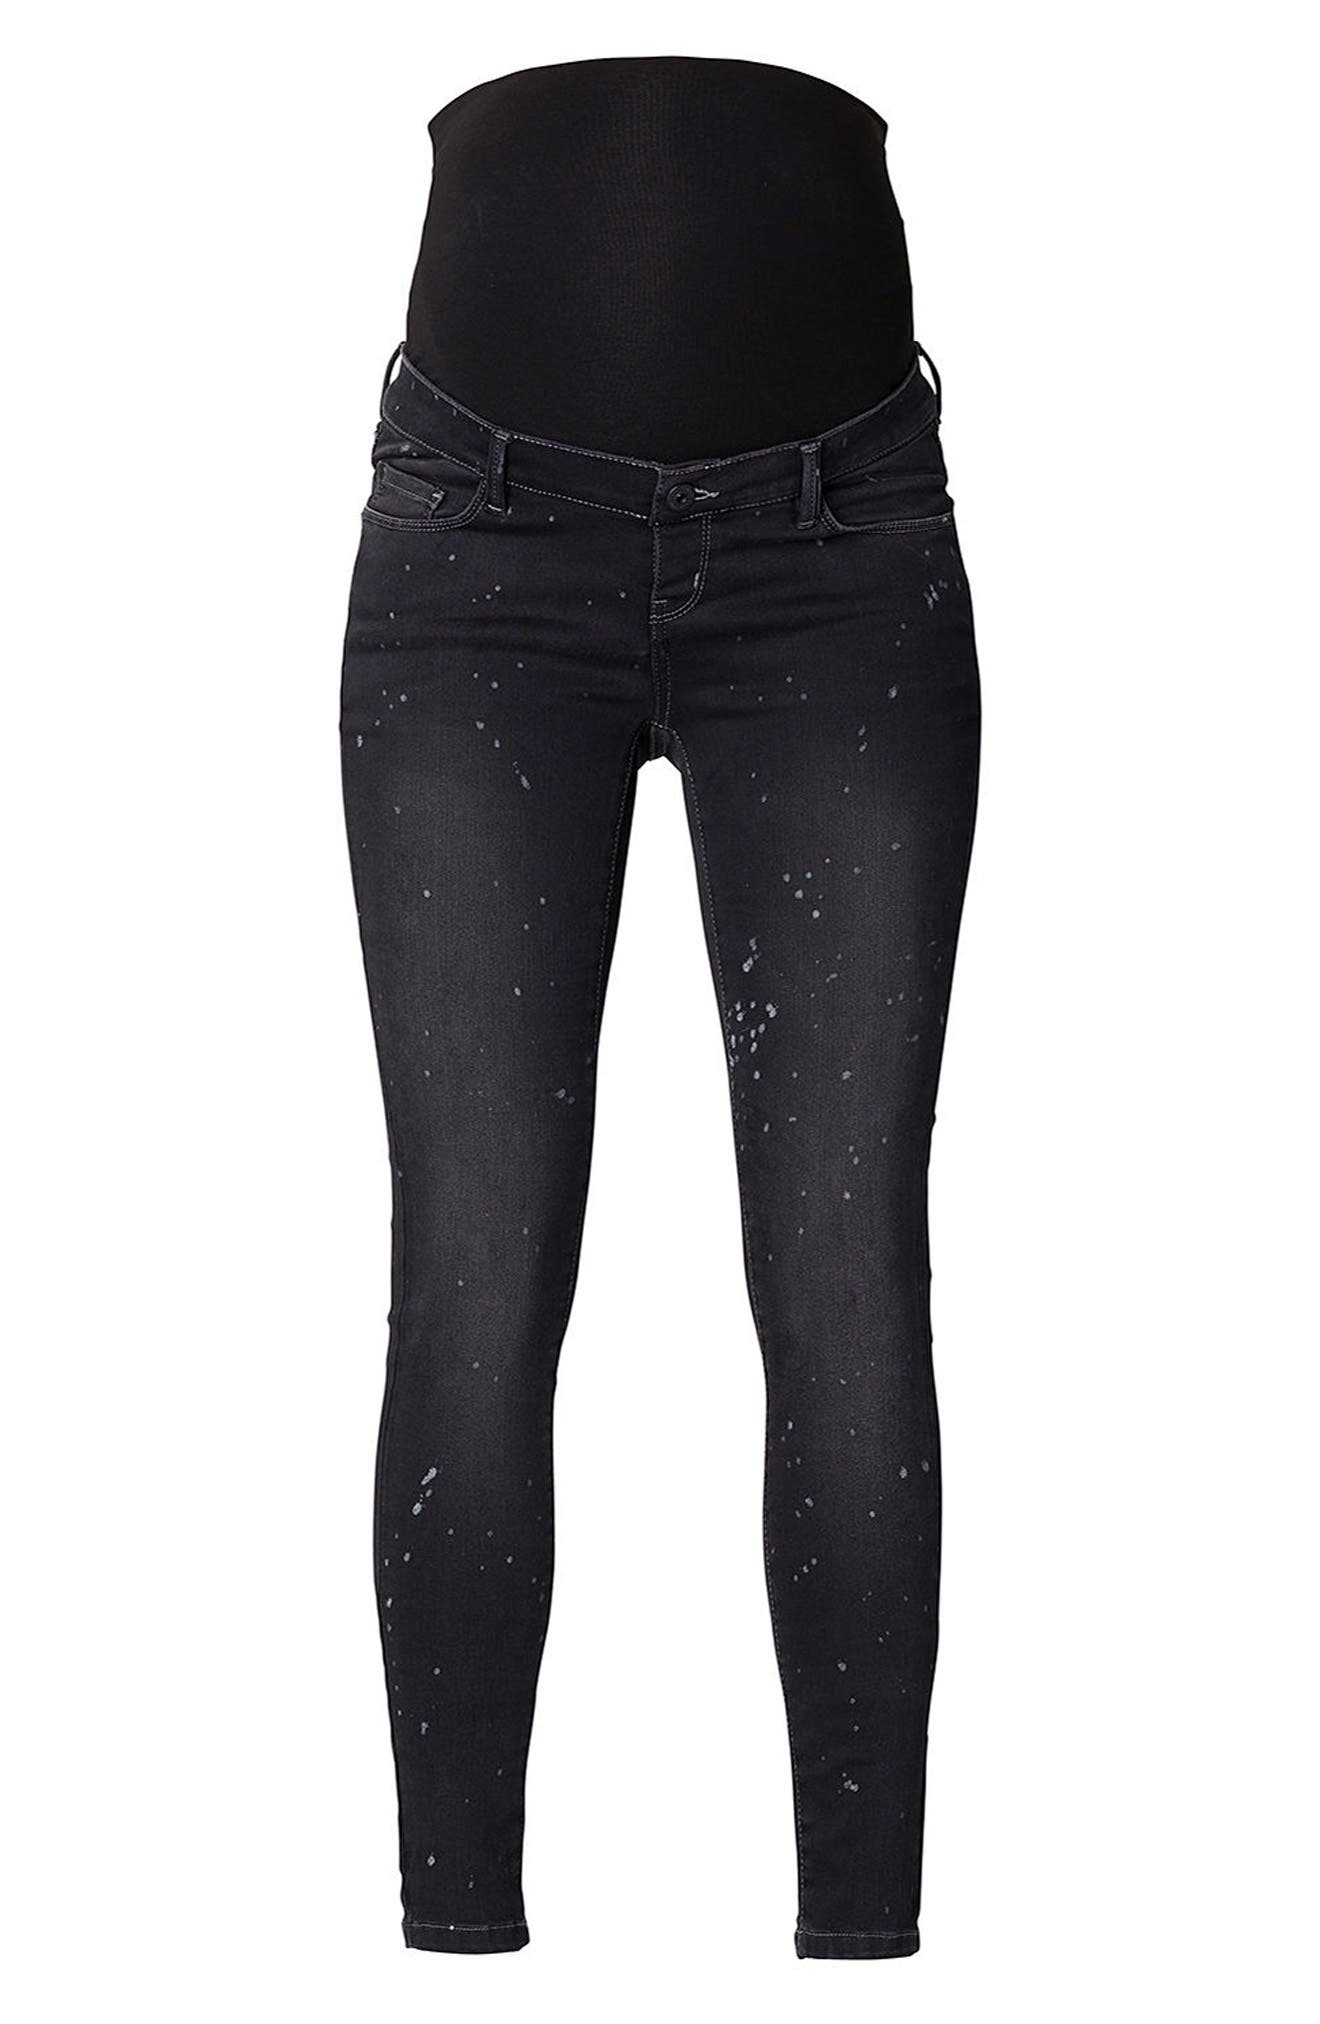 Supermom Over the Belly Skinny Maternity Jeans